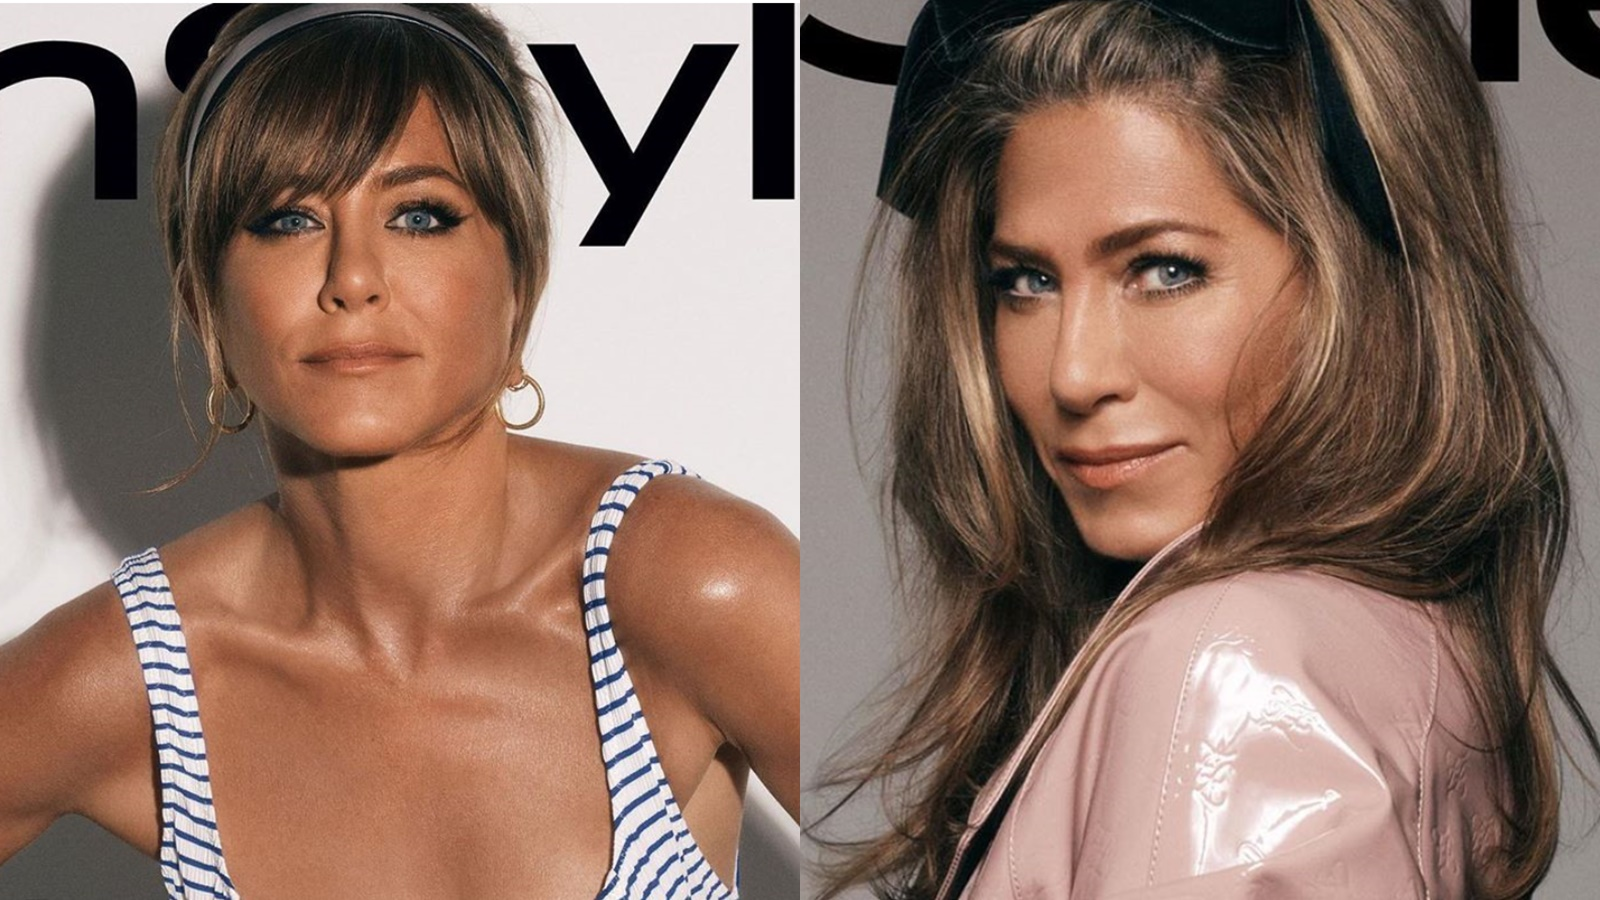 Jennifer Aniston's Dark Skin Color on InStyle October Beauty Cover Upsets Fans